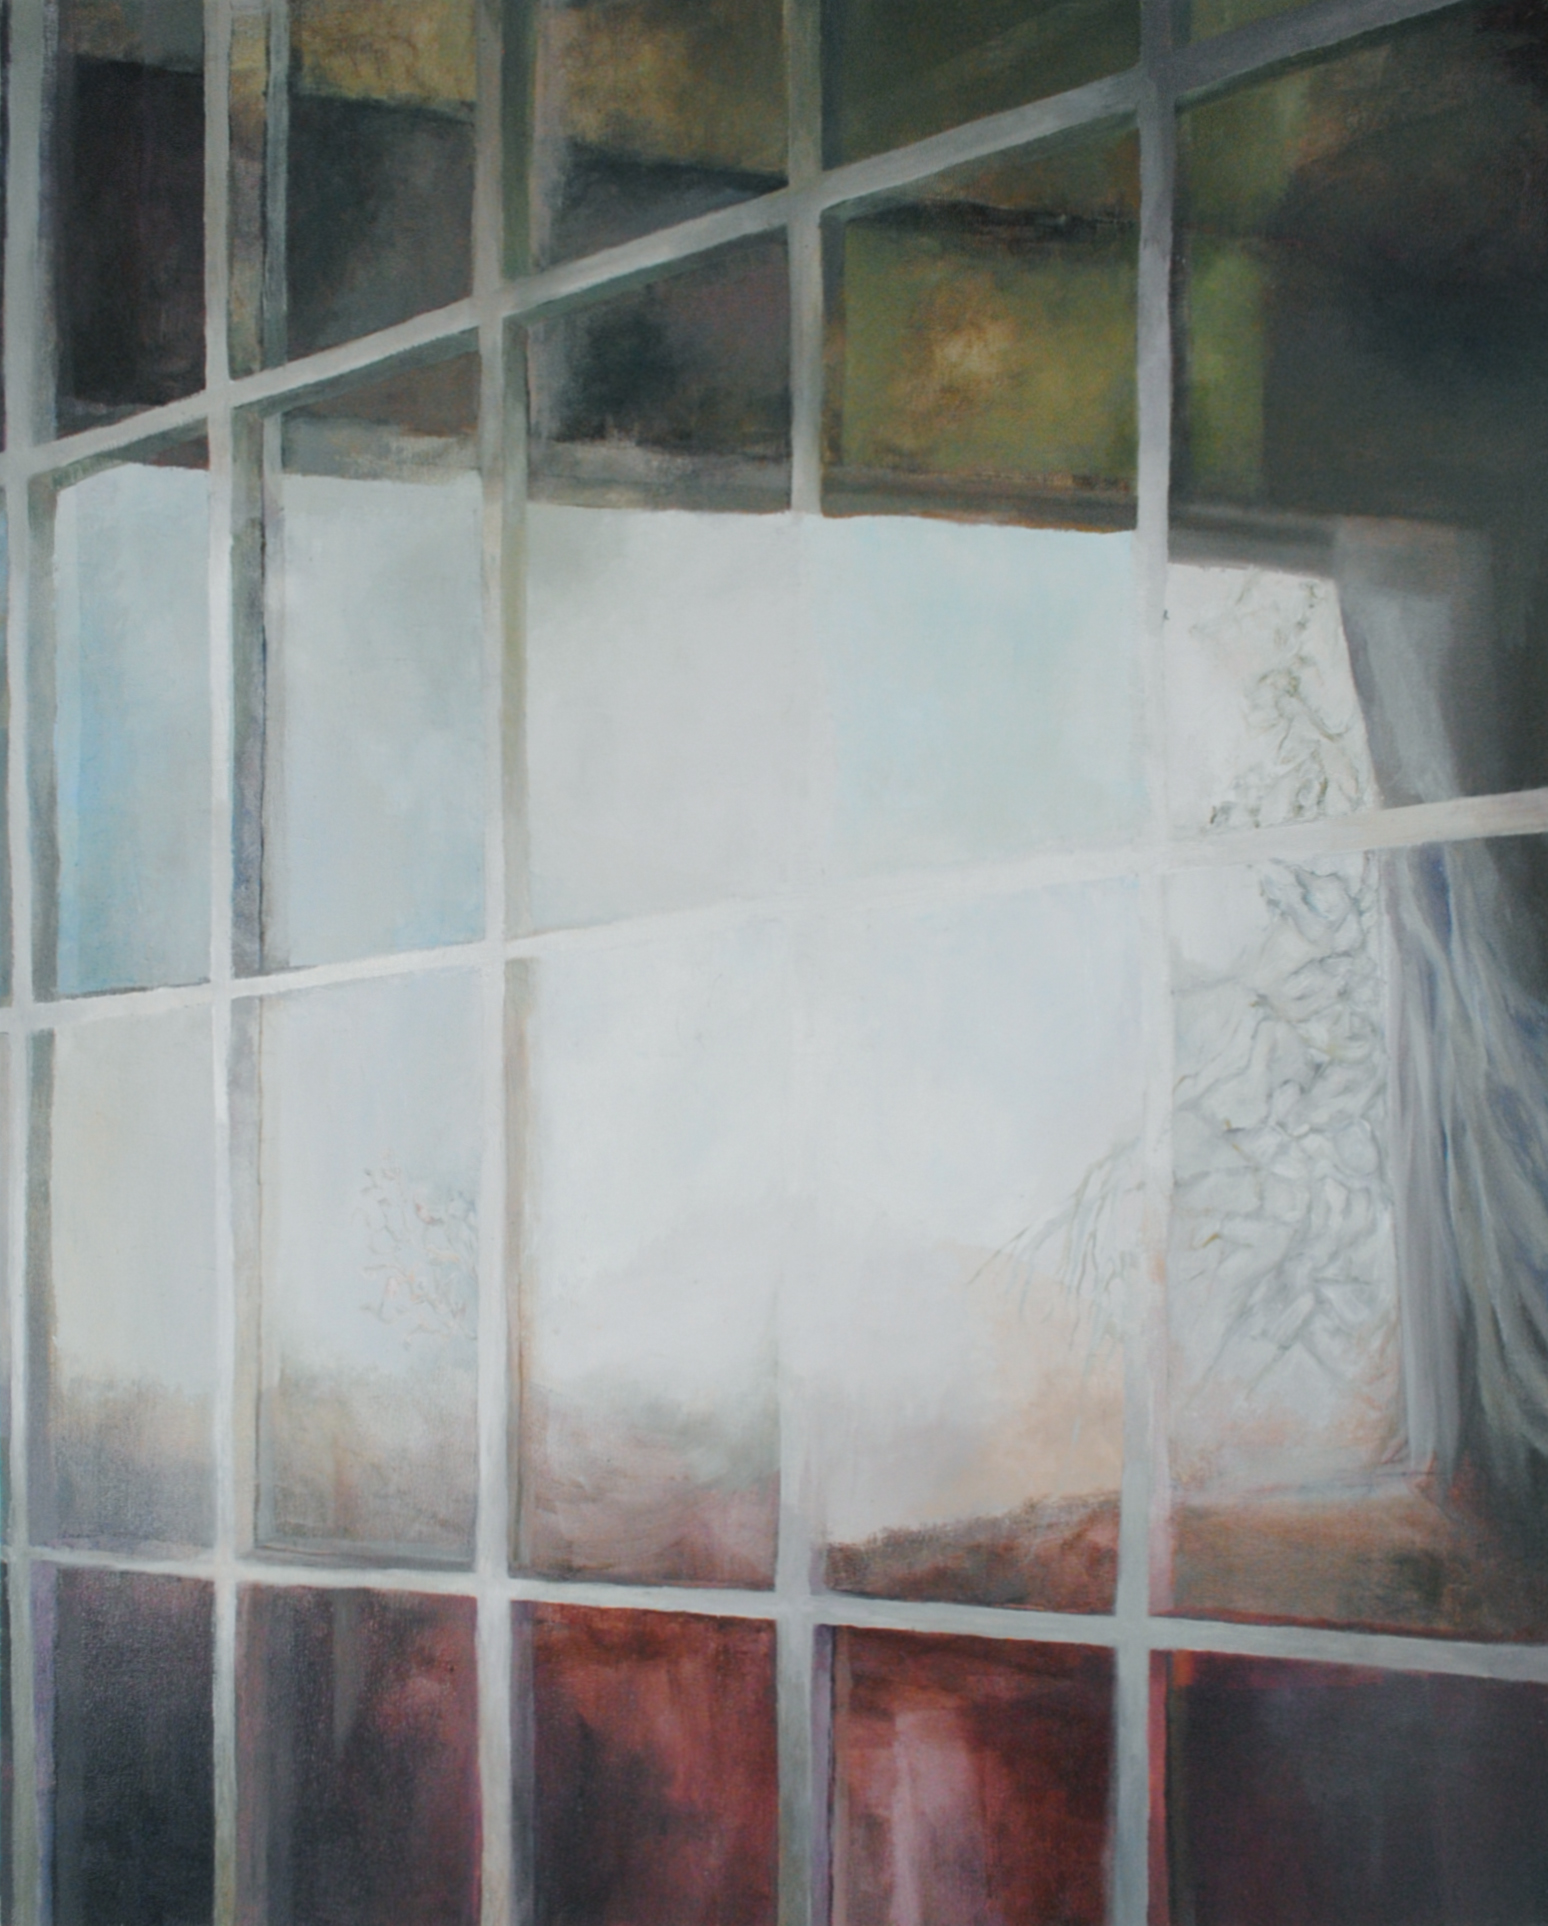 Windows, Oil on Canvas, 36 x 48 inches, 2011